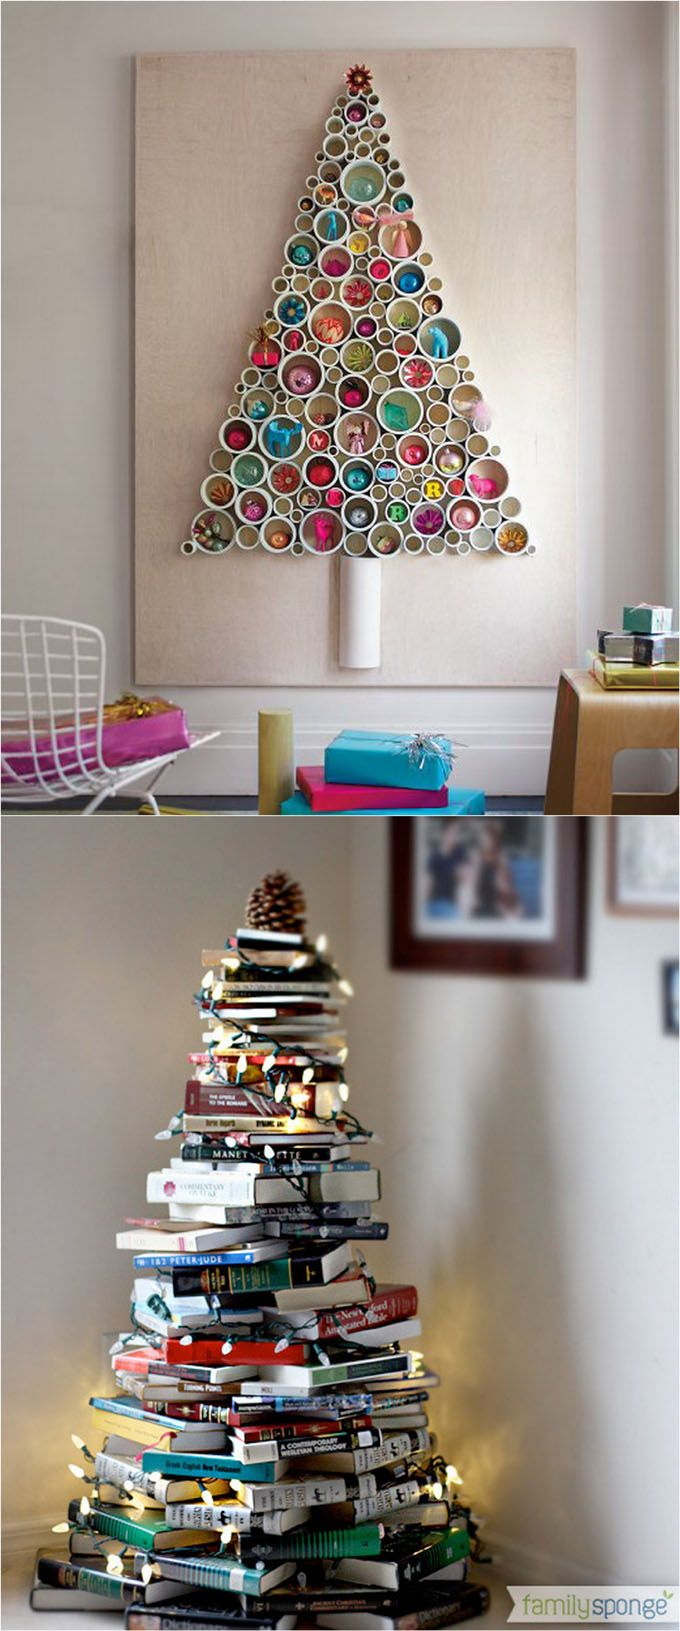 10 Attractive Ideas For Christmas Decorations To Make 70 diy christmas decorations easy decorating ideas decoration diy